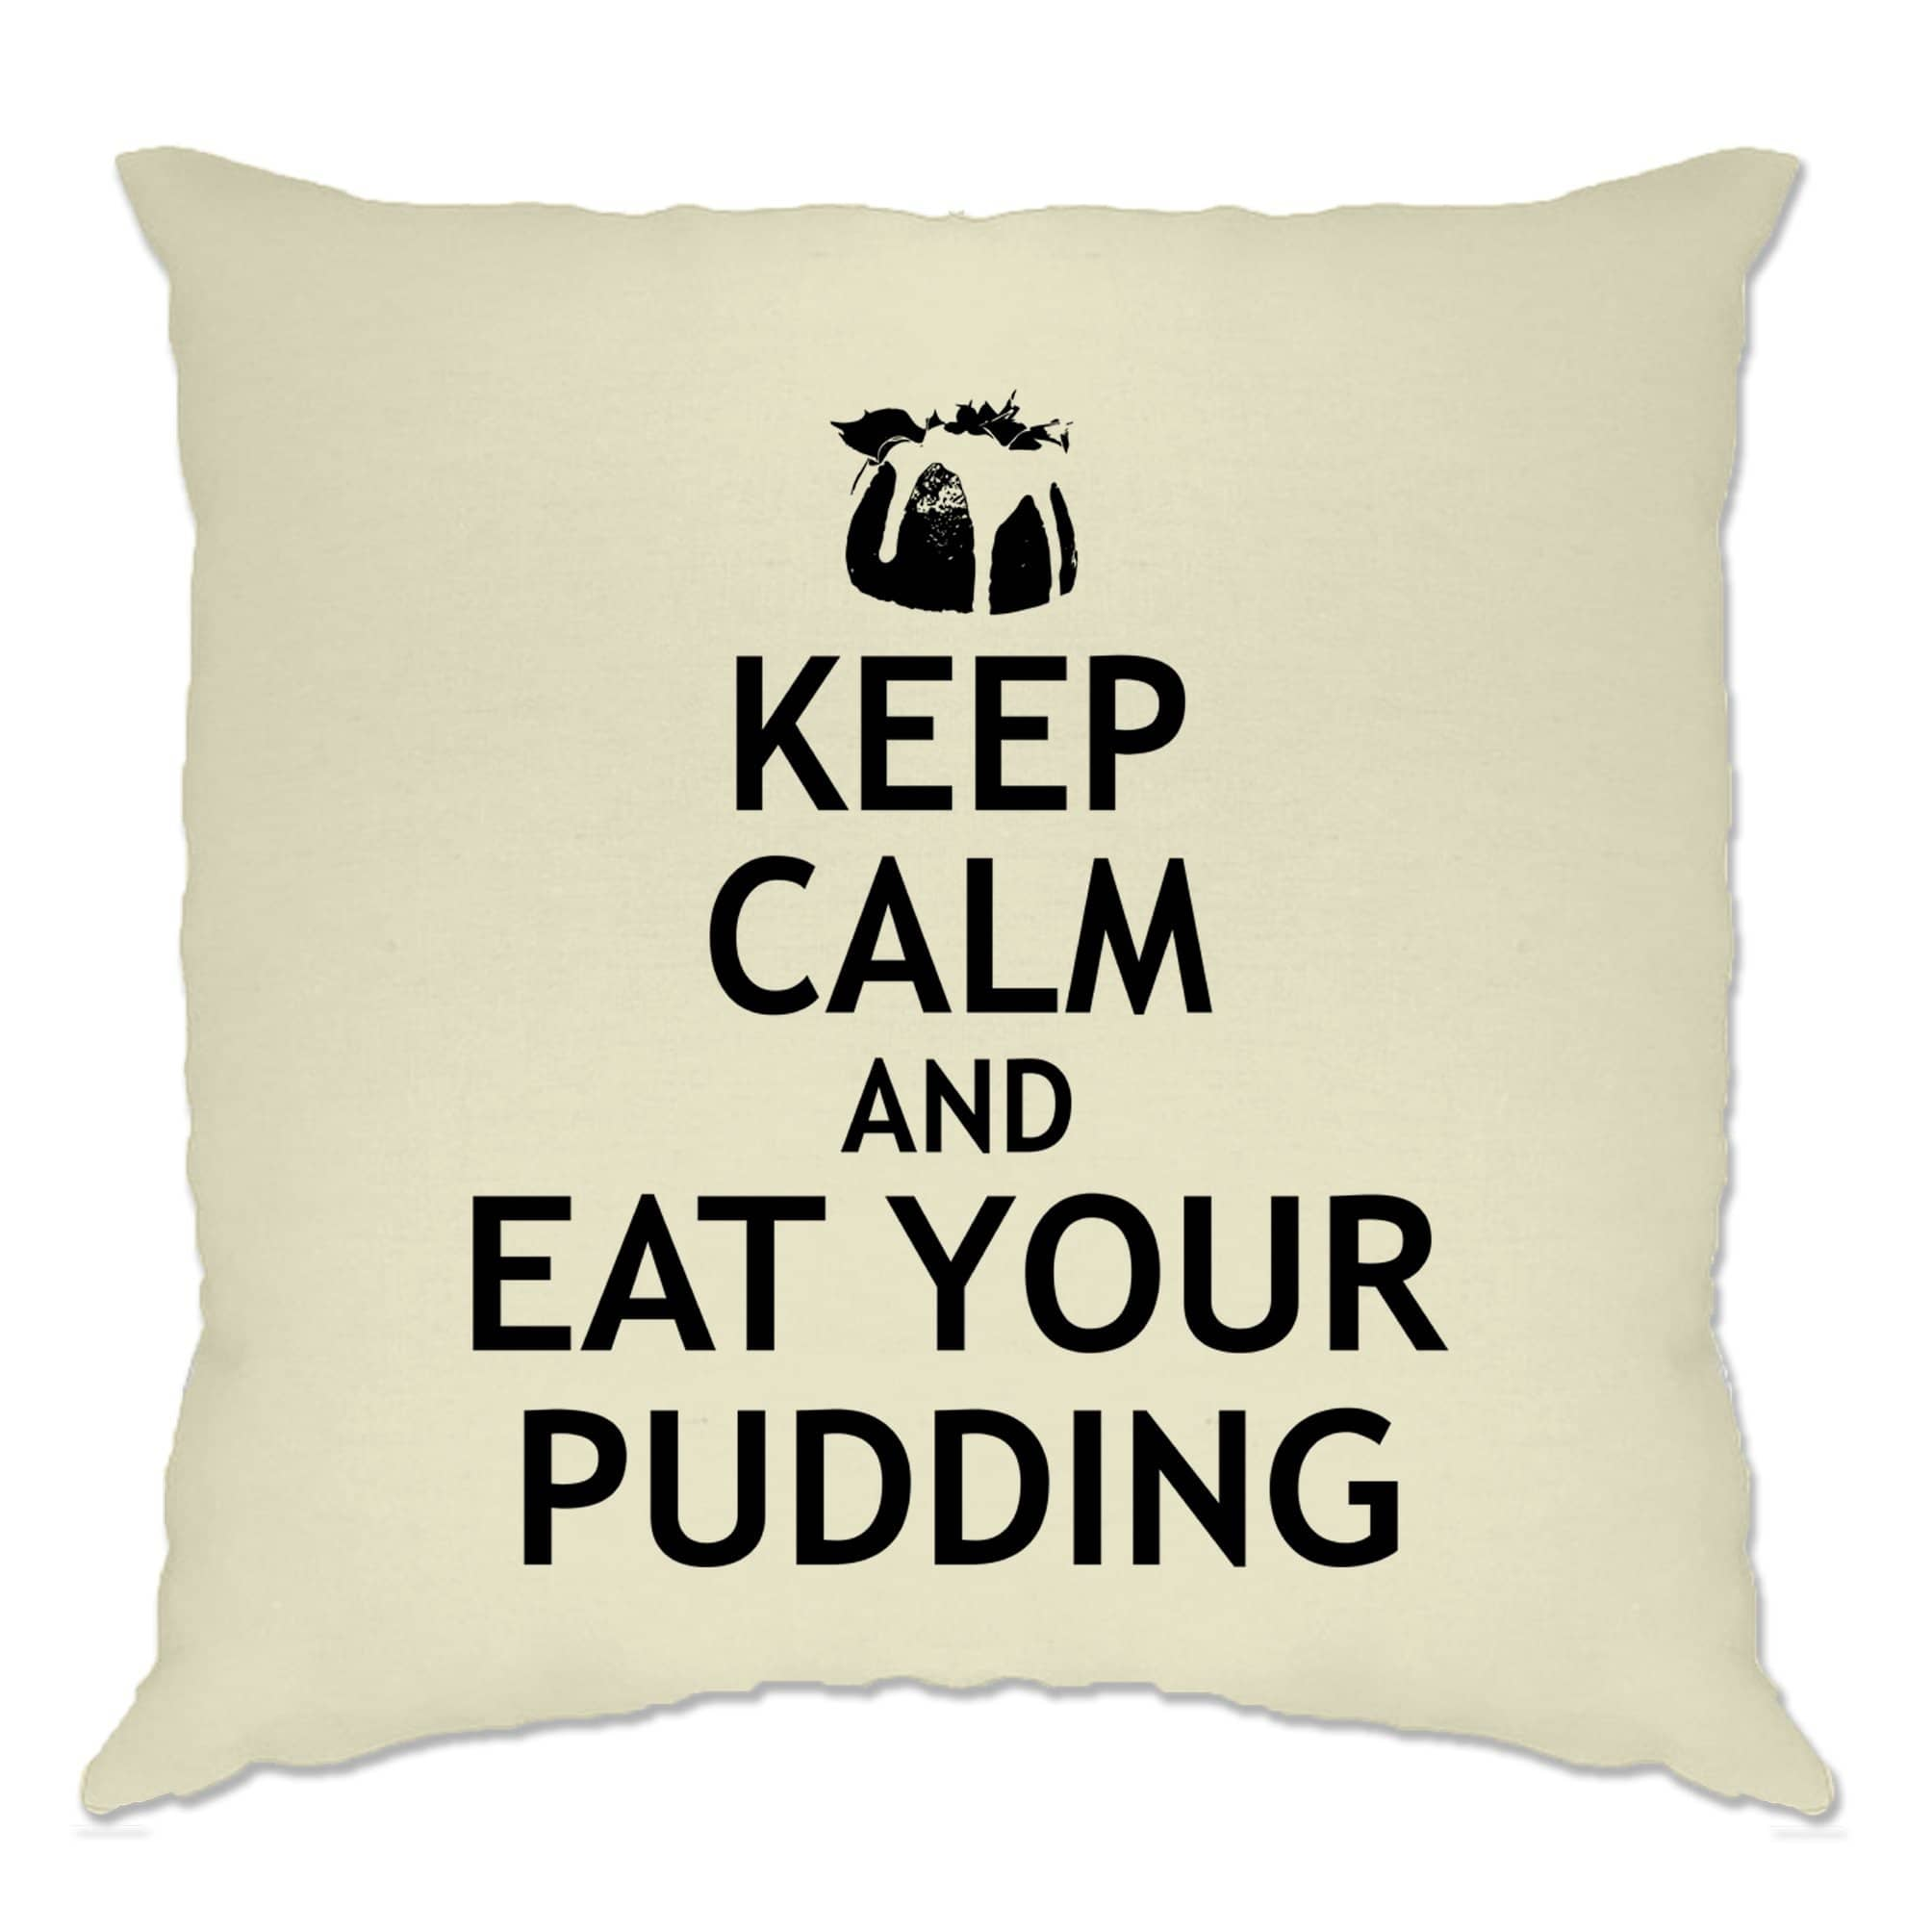 Christmas Cushion Cover Keep Calm And Eat Your Xmas Pudding